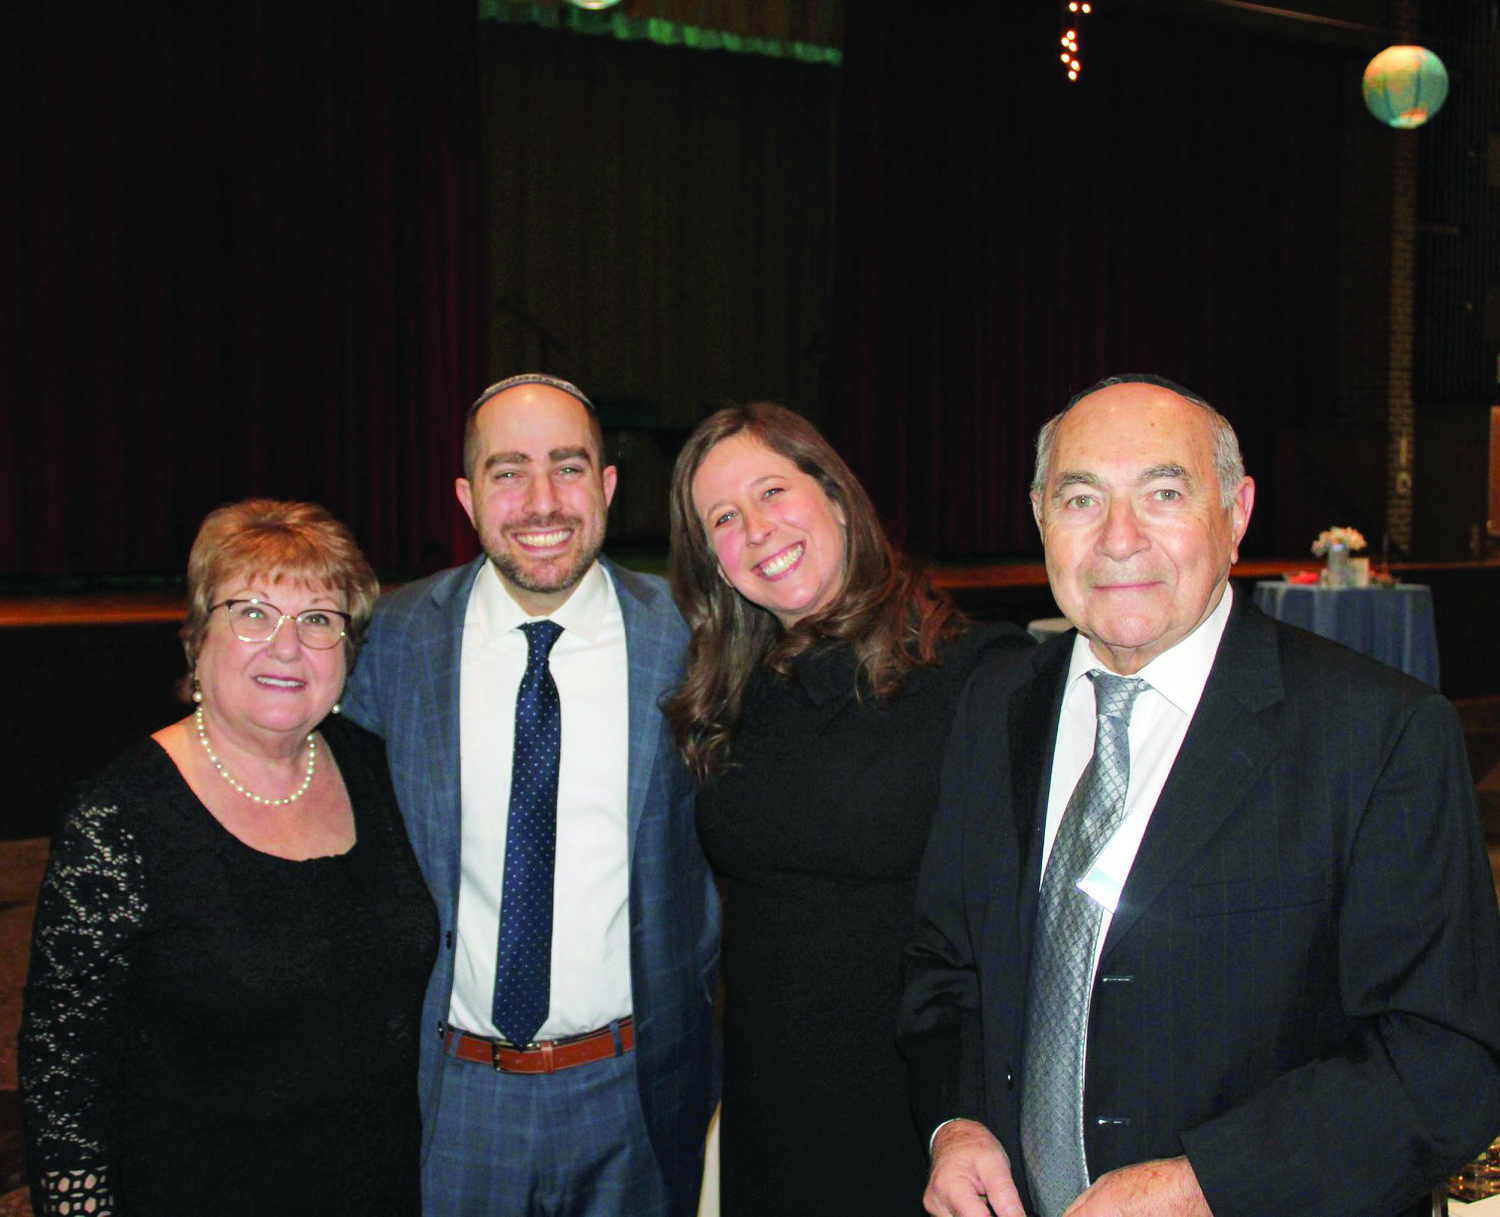 Family photo (left to right): Susana Fel, Rabbi Michael Fel, Shayna Fel, and Isaac Fel. Susana and Isaac are Rabbi Fel's parents.